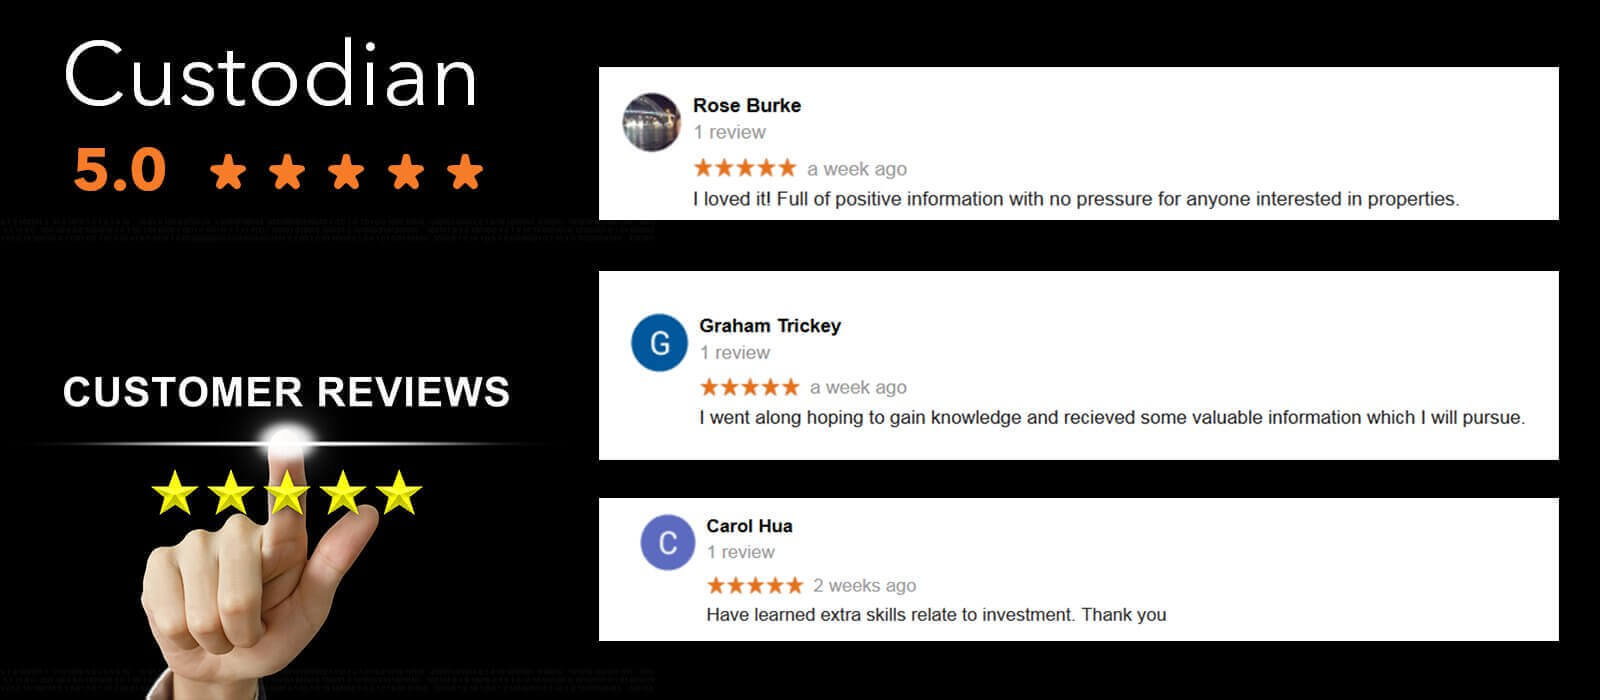 Google reviews from custodian clients